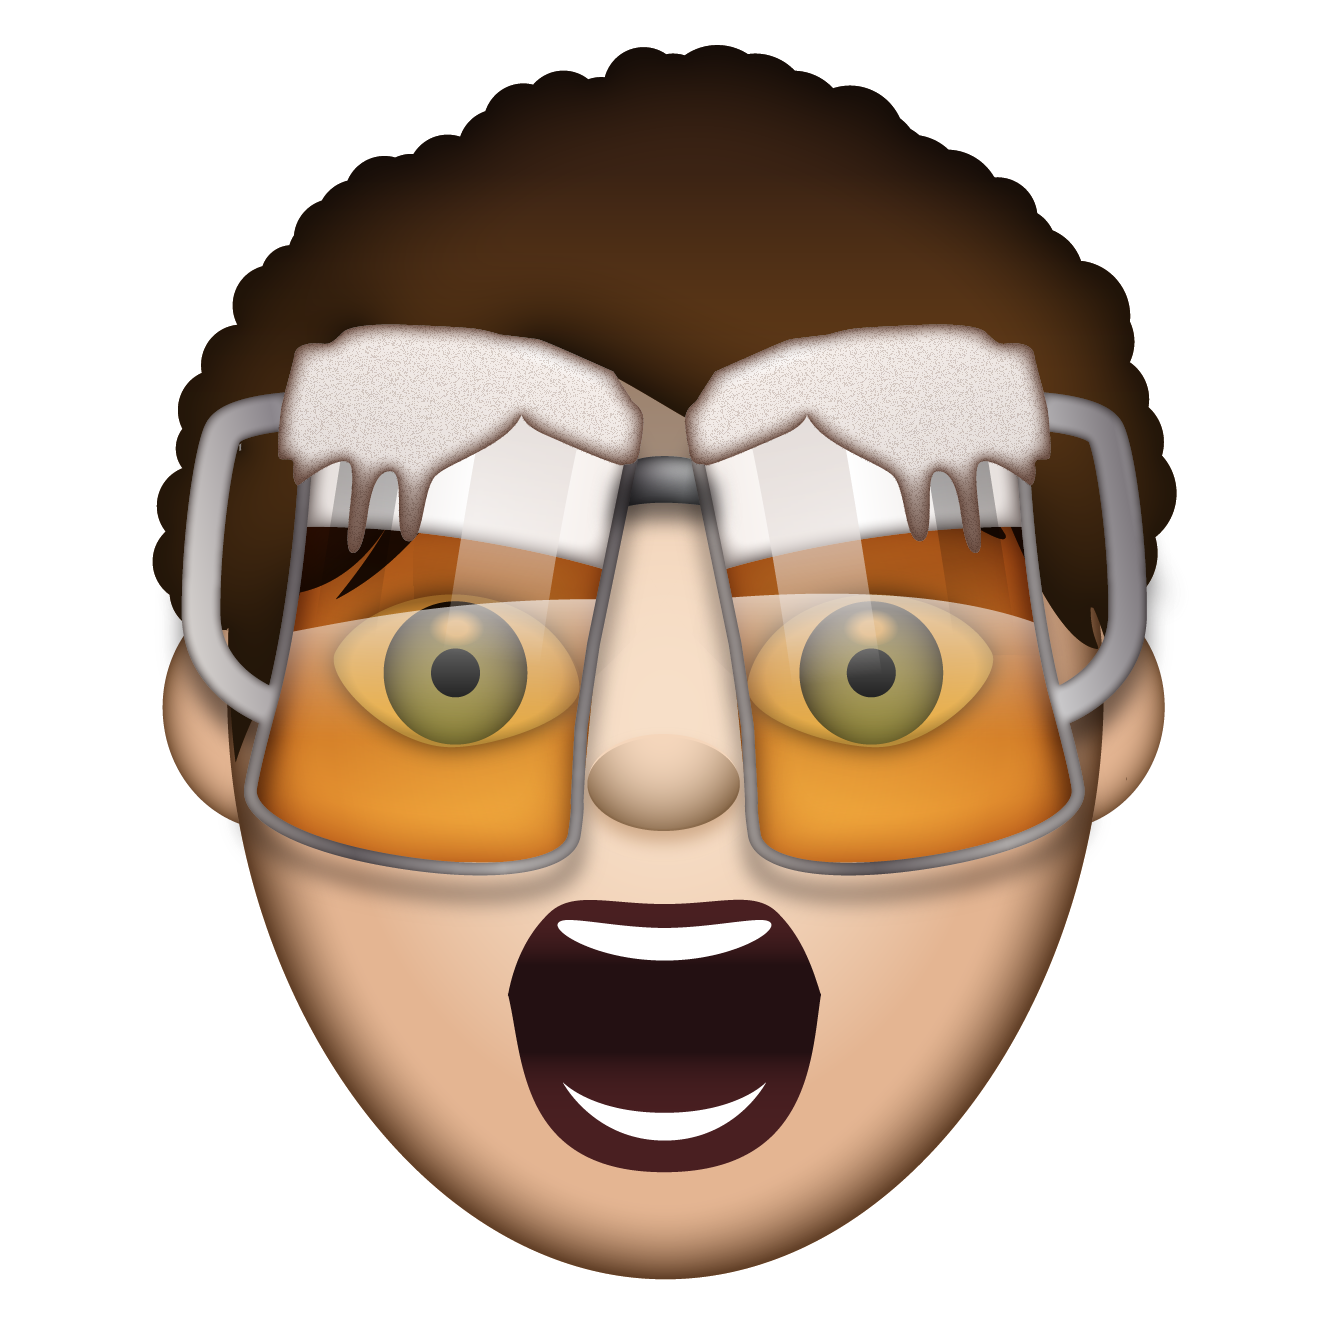 The Beer Goggles Guy Emoji, First world, Beer goggles